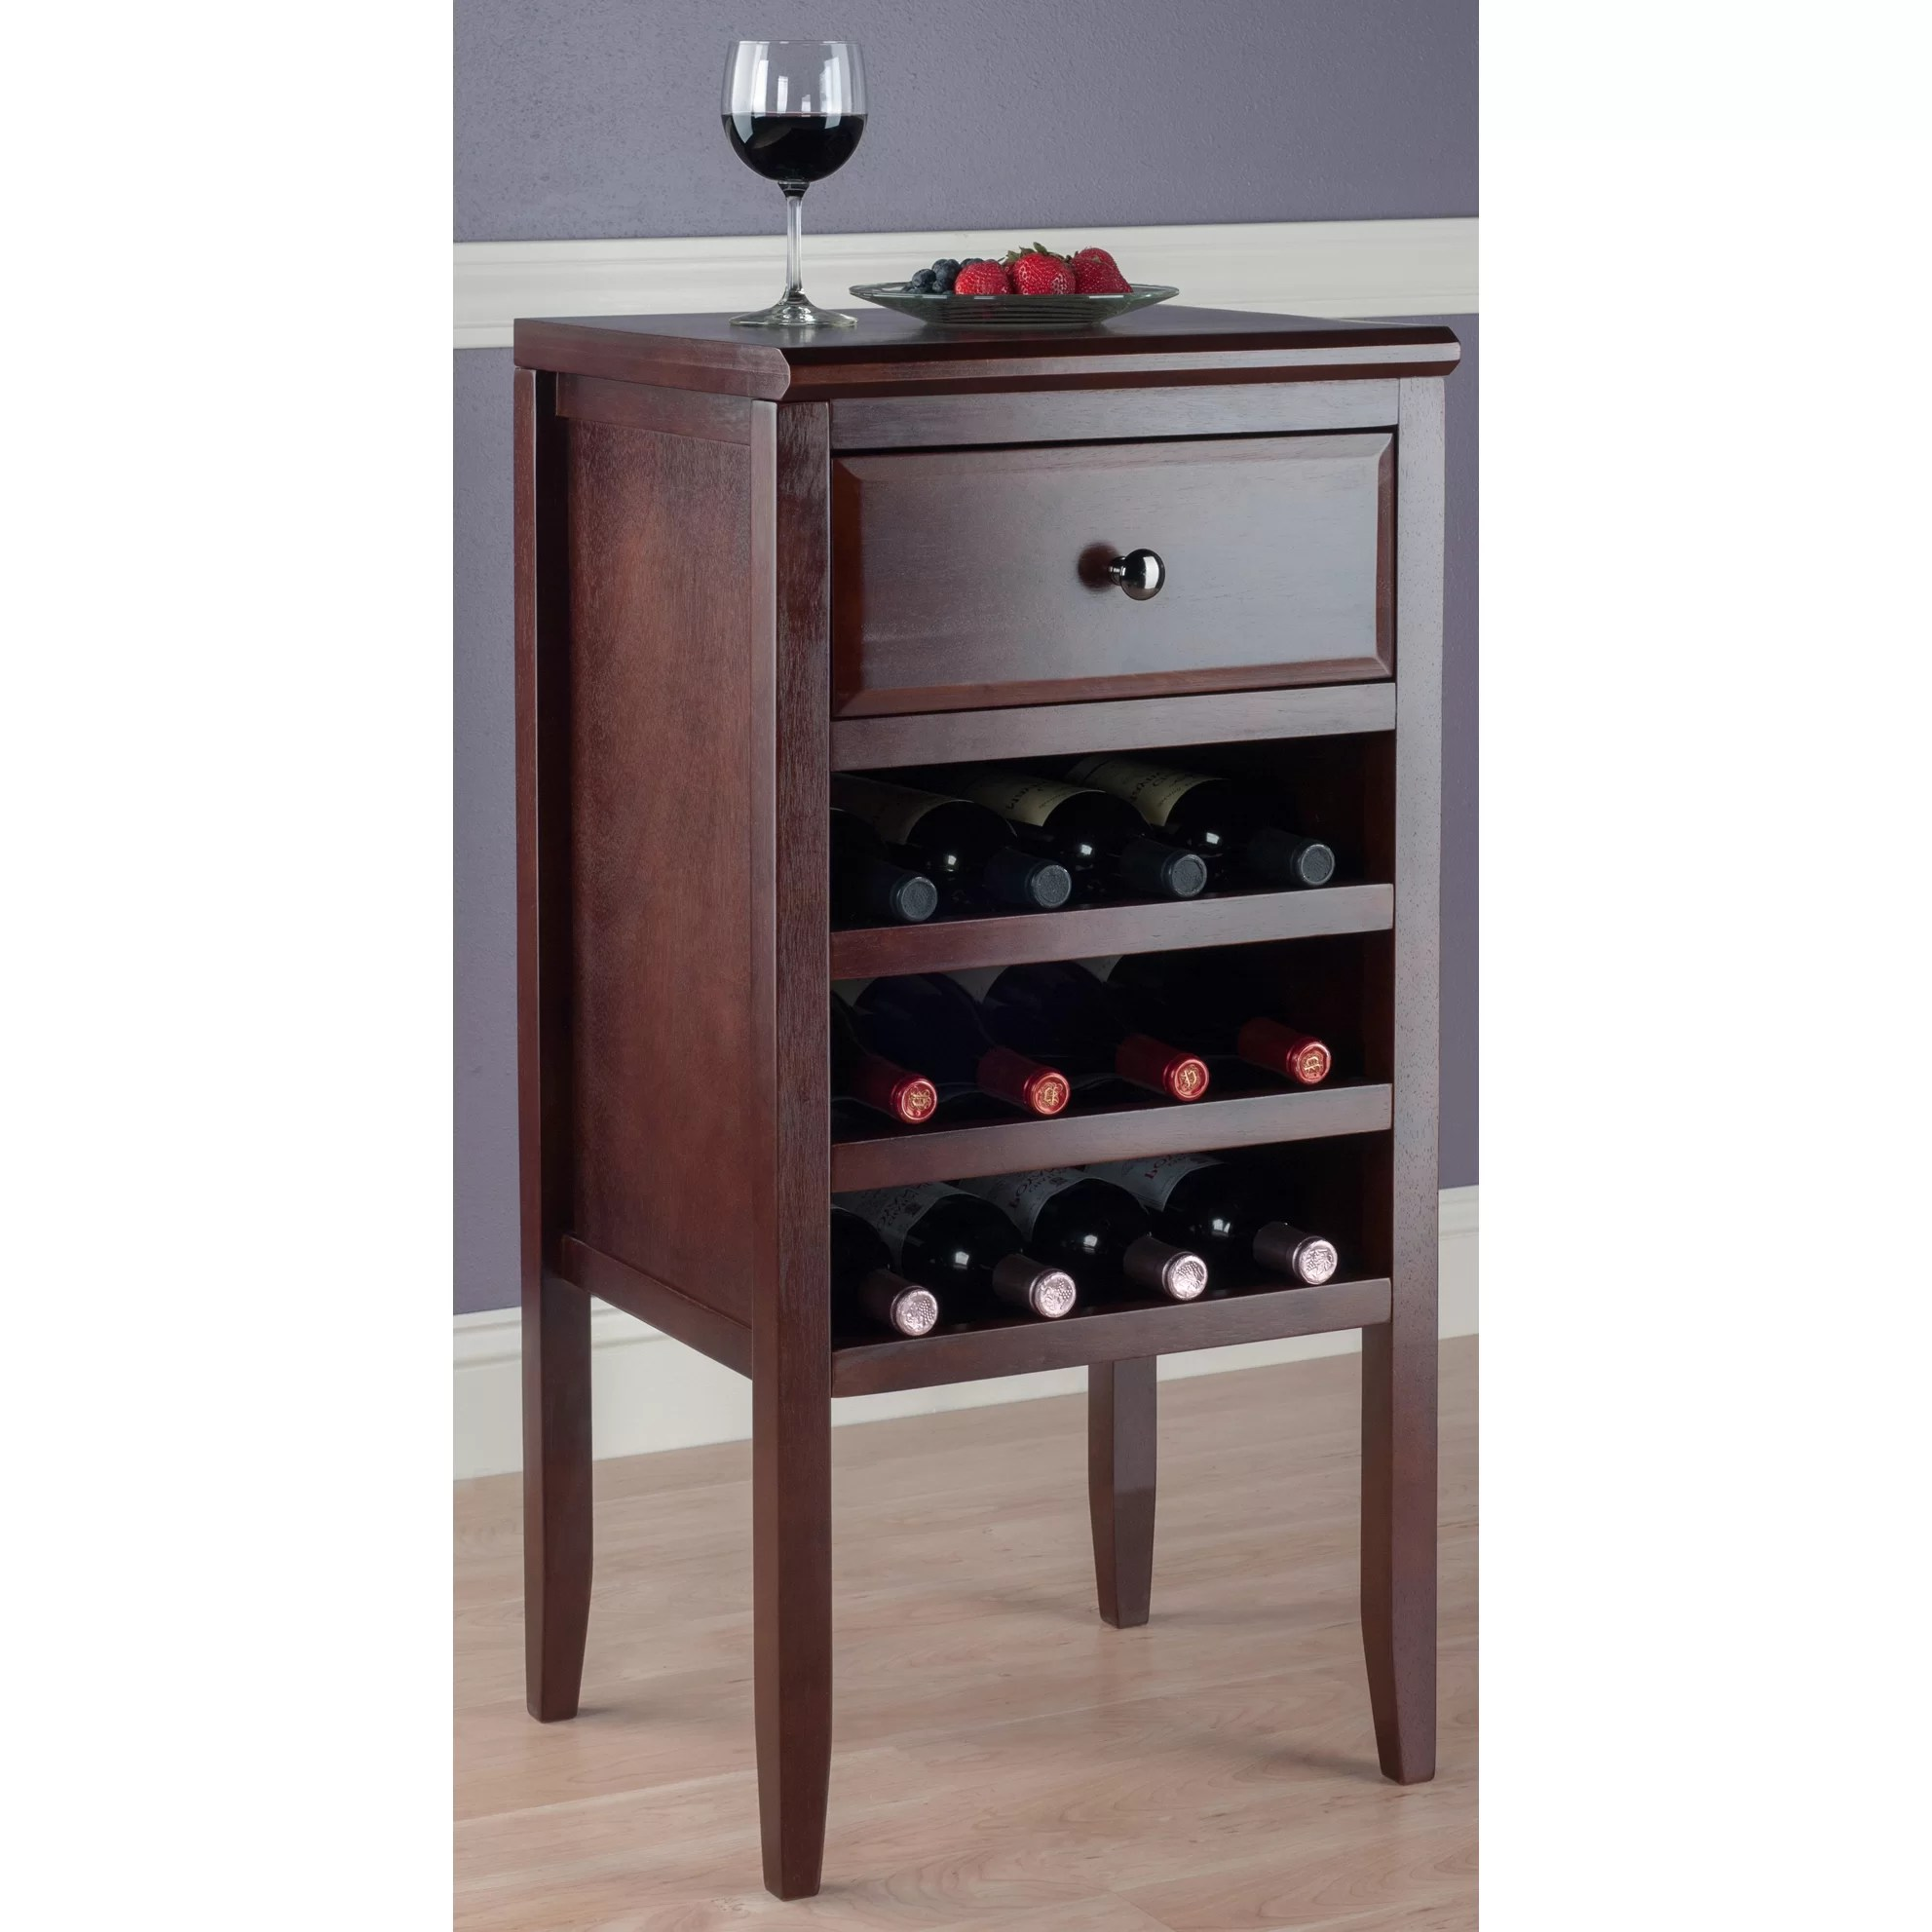 In Floor Wine Storage Darby Home Co Crescent 12 Bottle Floor Wine Cabinet